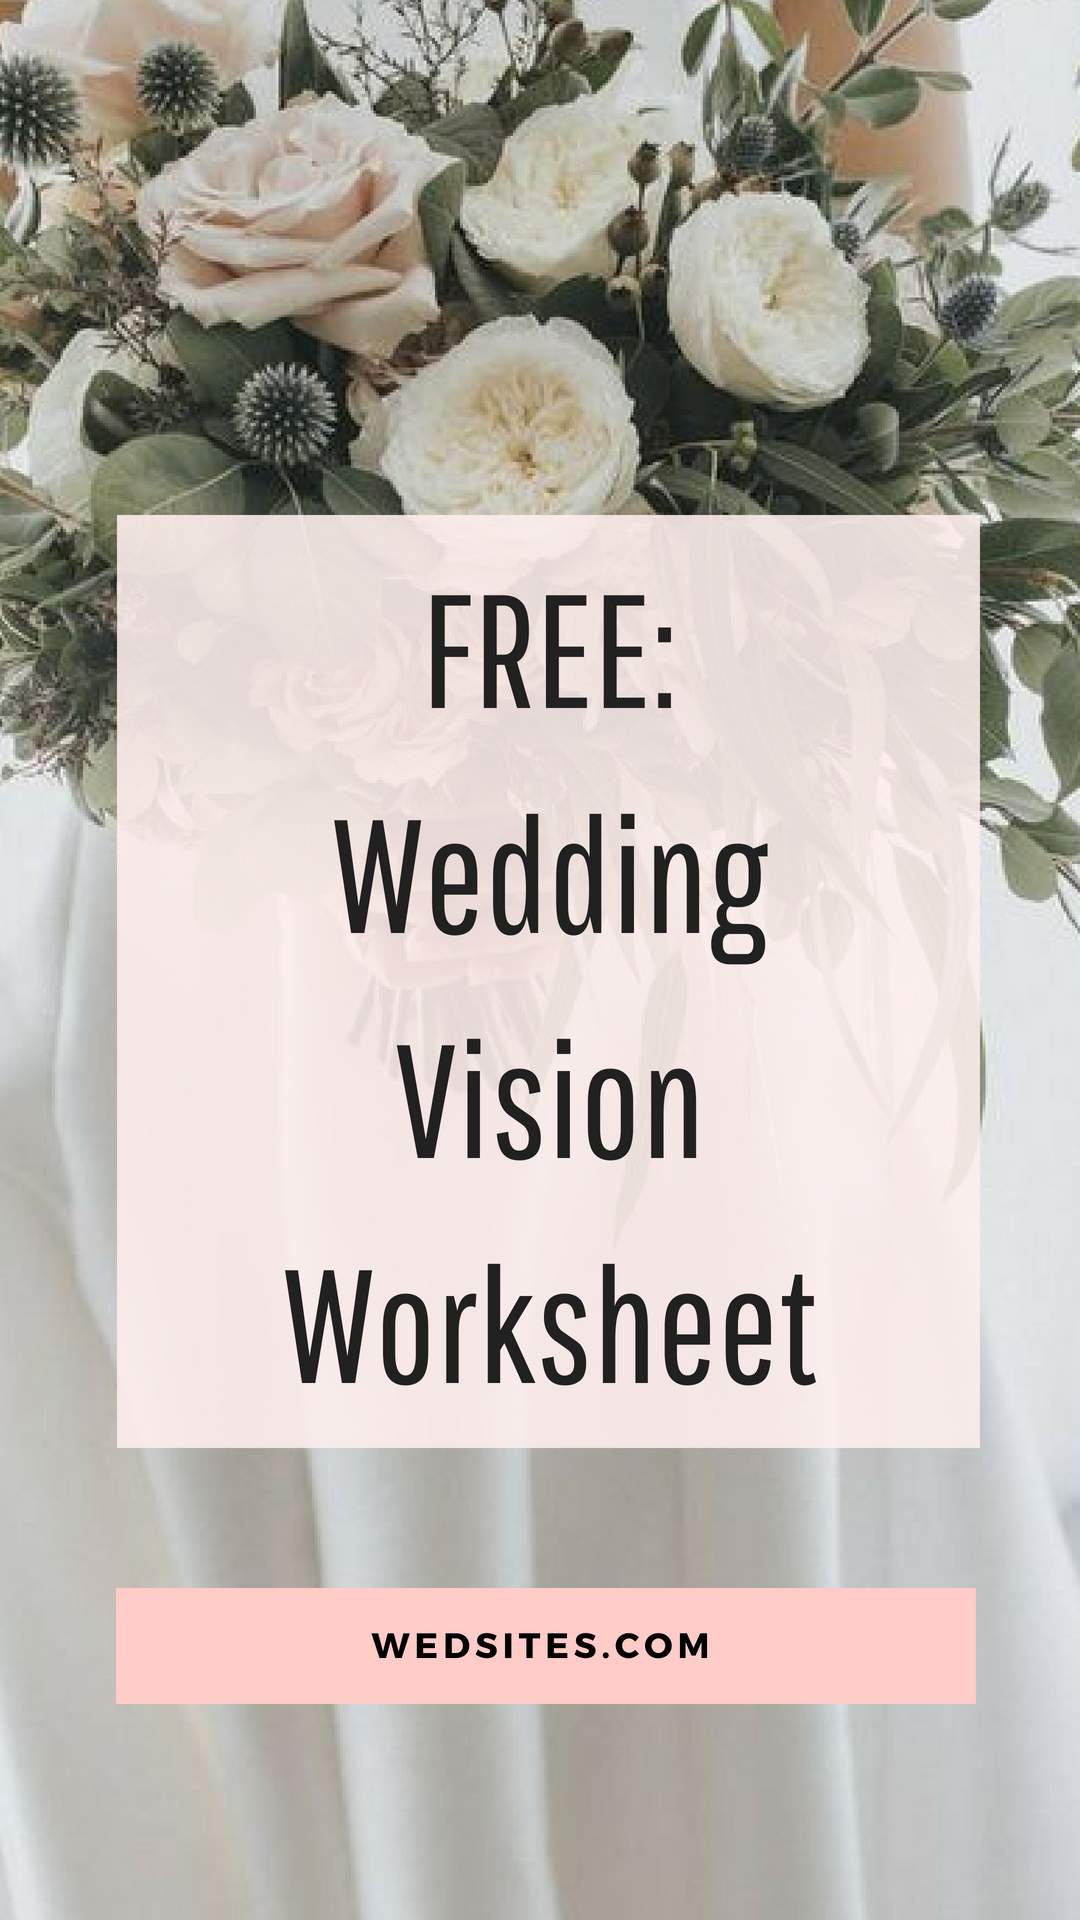 A Few Tips On Hand And A Free Worksheet To Help You Pull